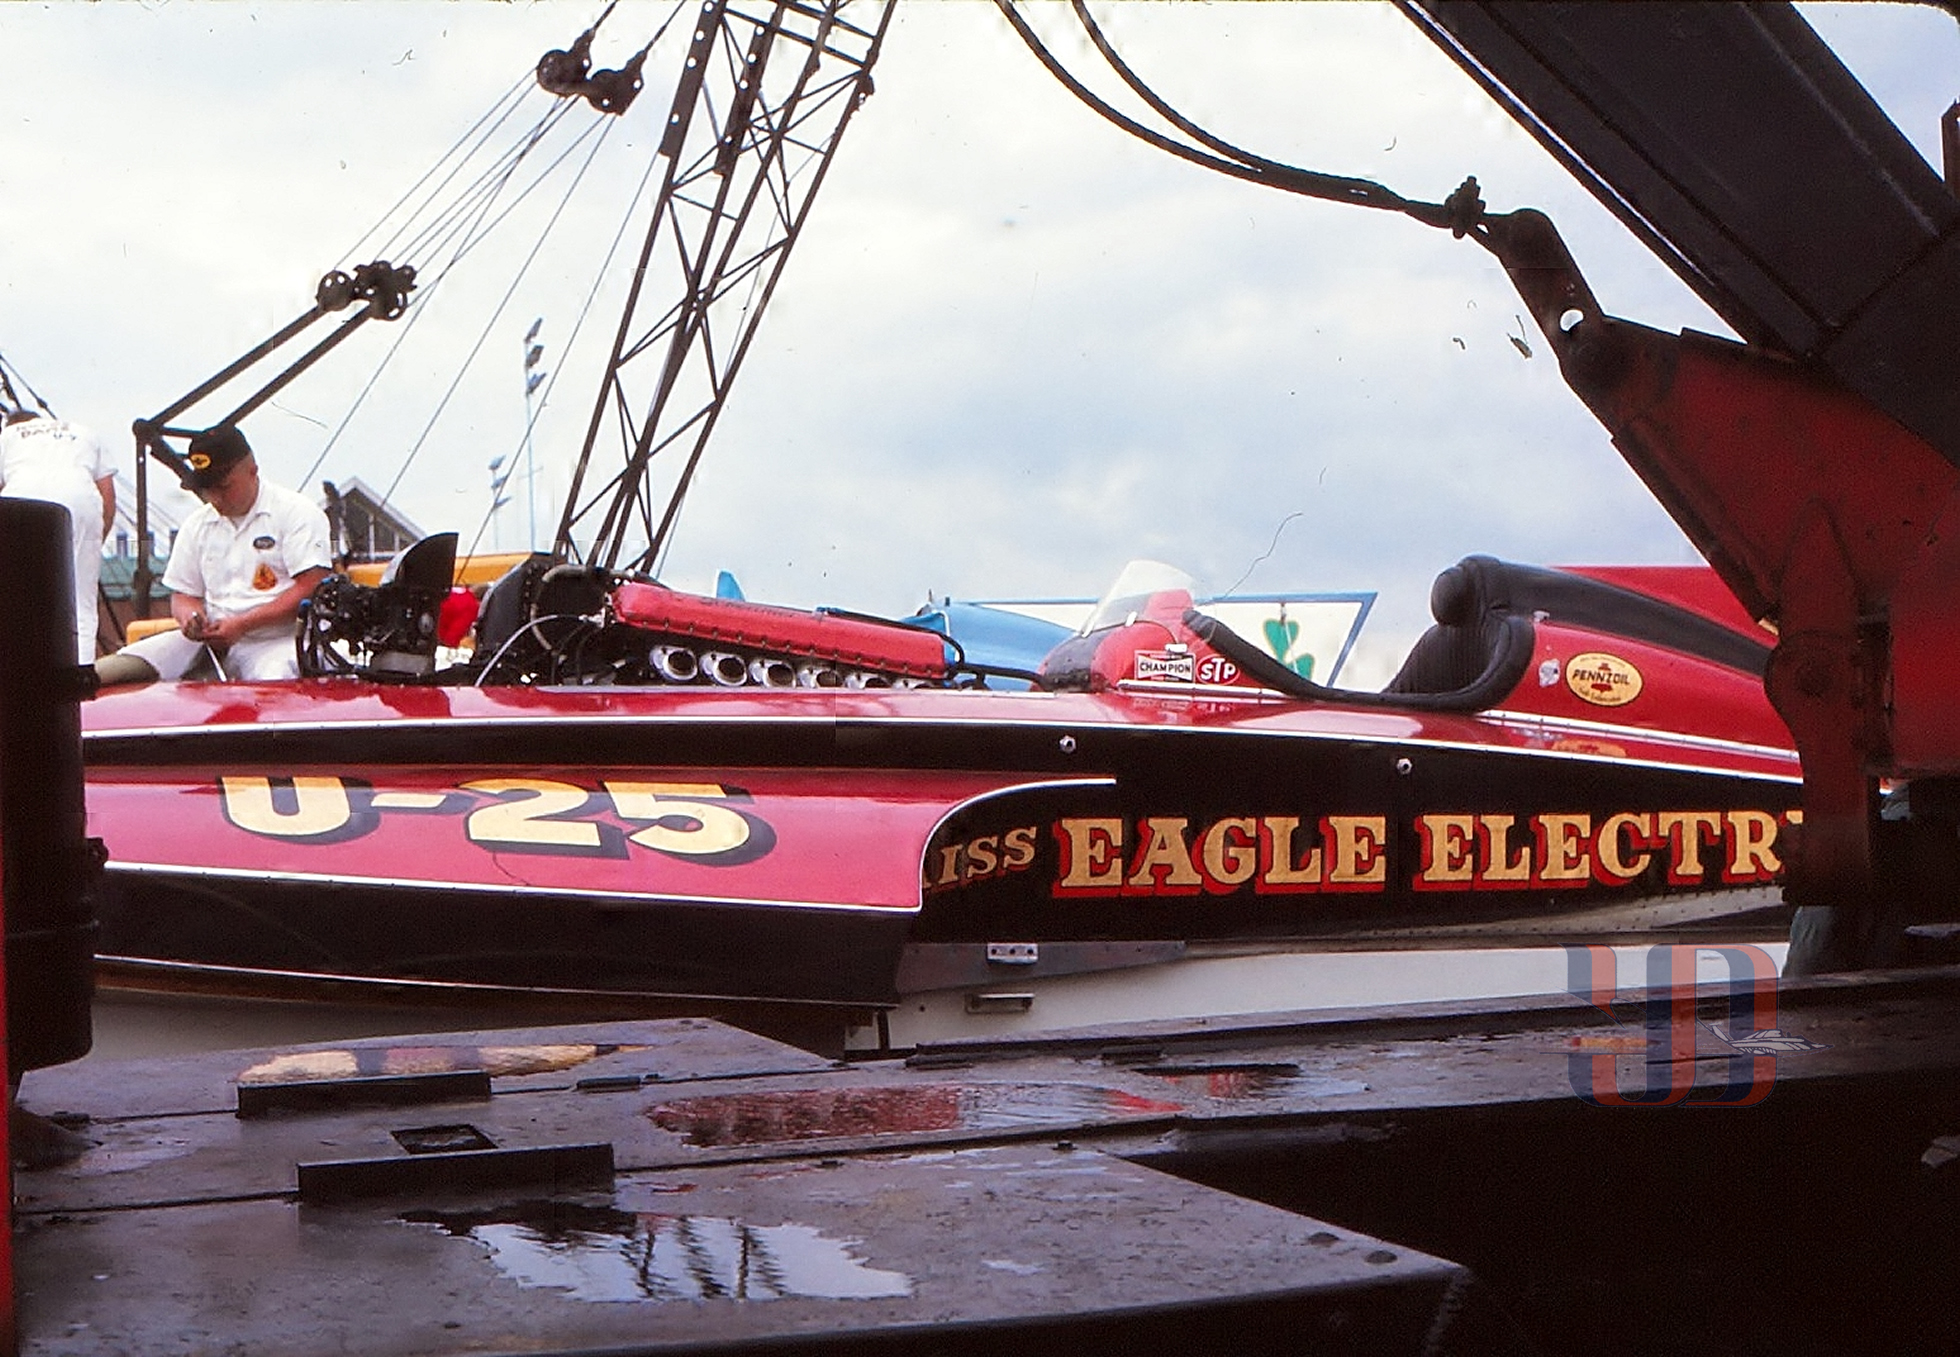 1968 Miss Eagle Electric